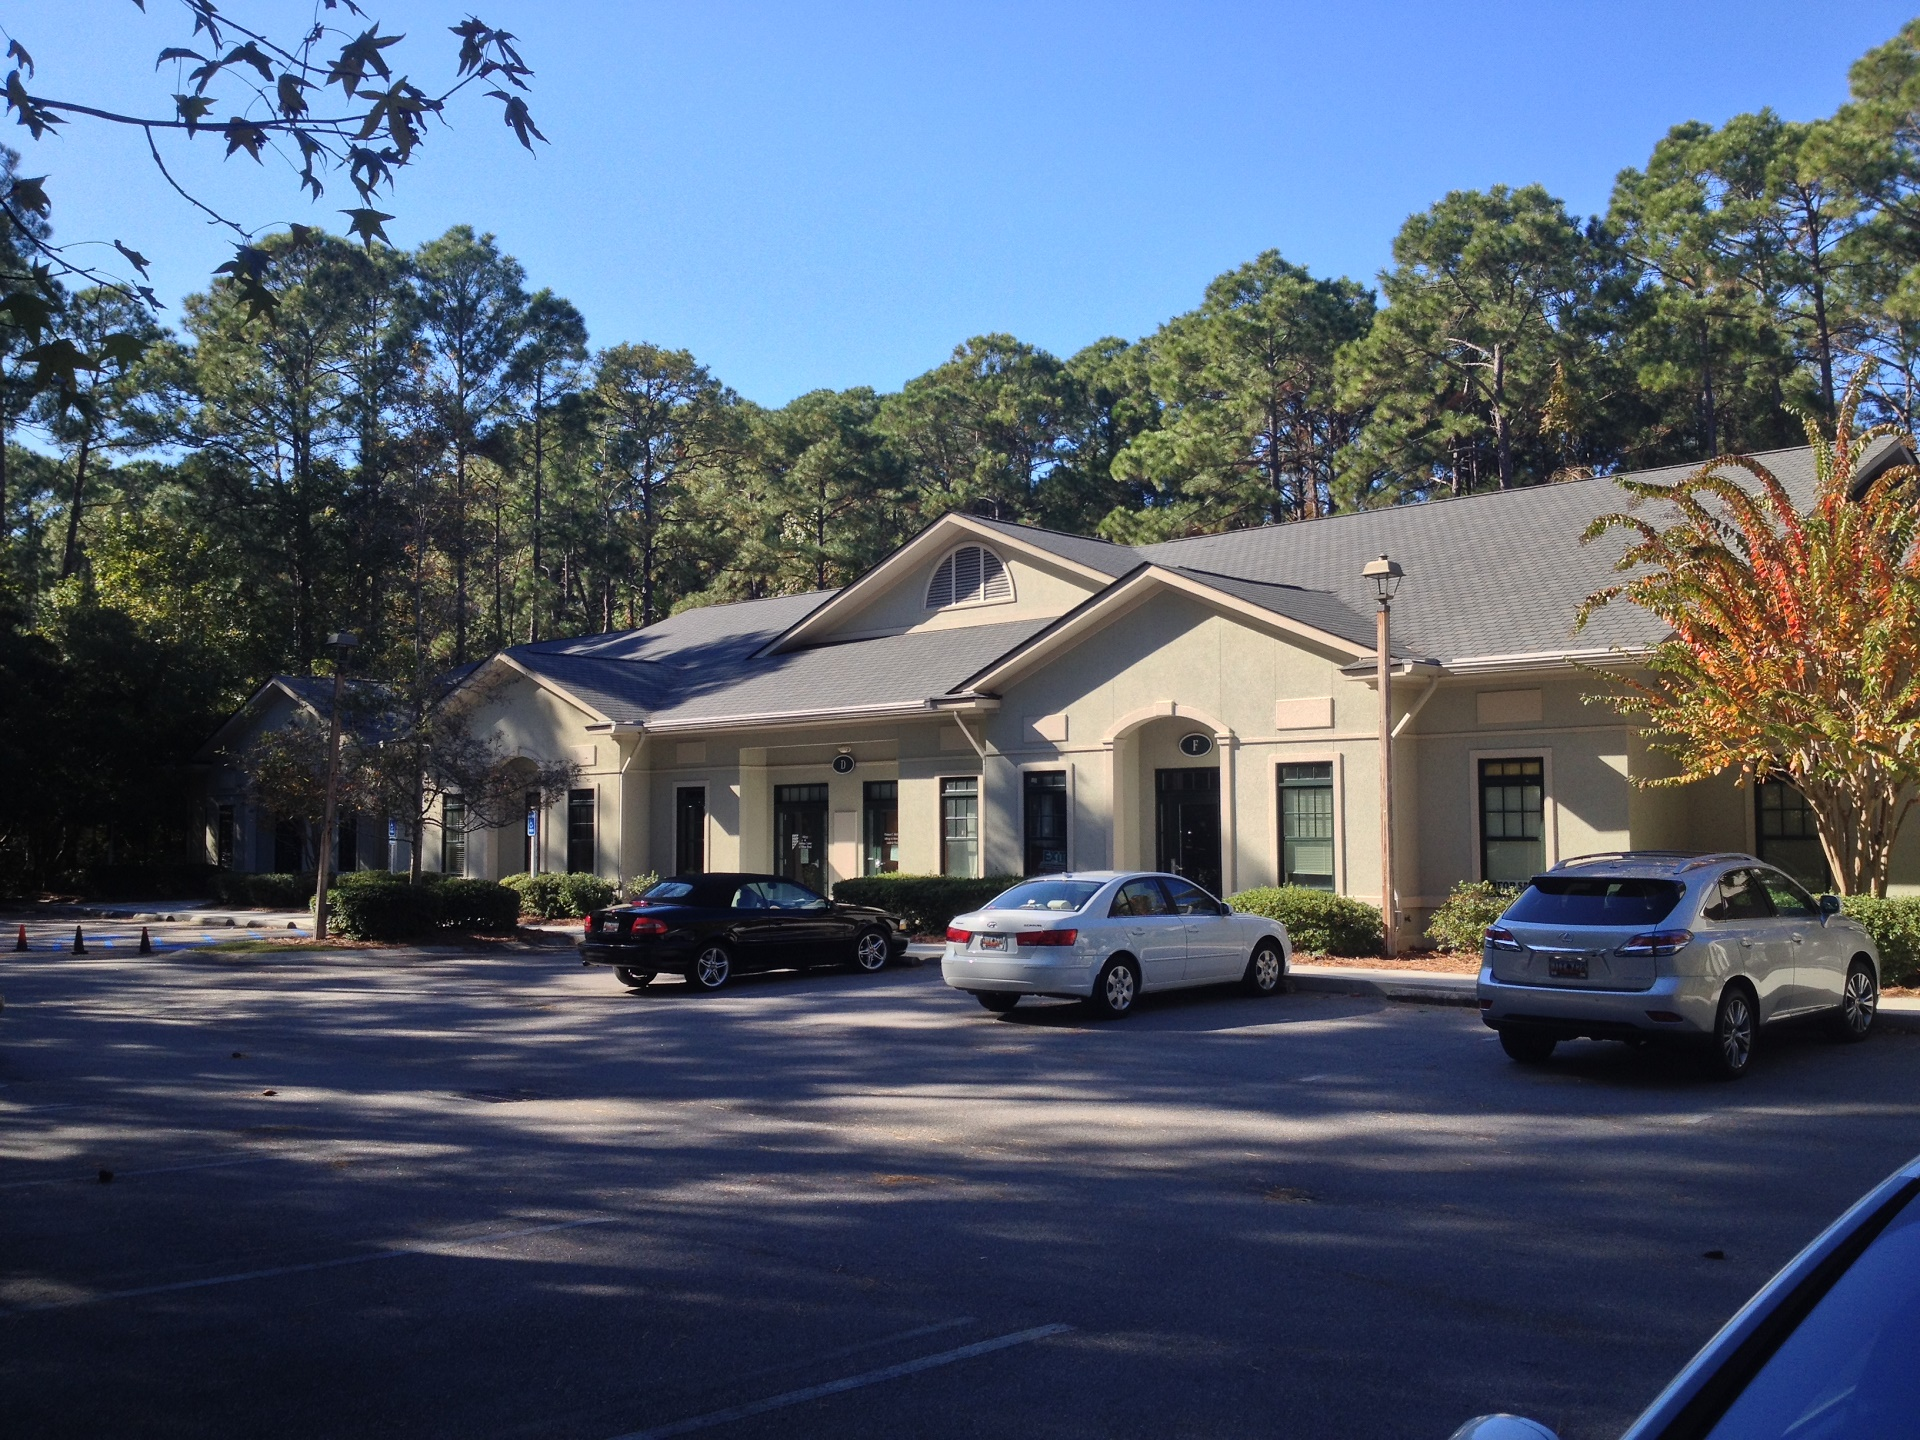 Hilton Head Office of Allergy 7 Asthma Center